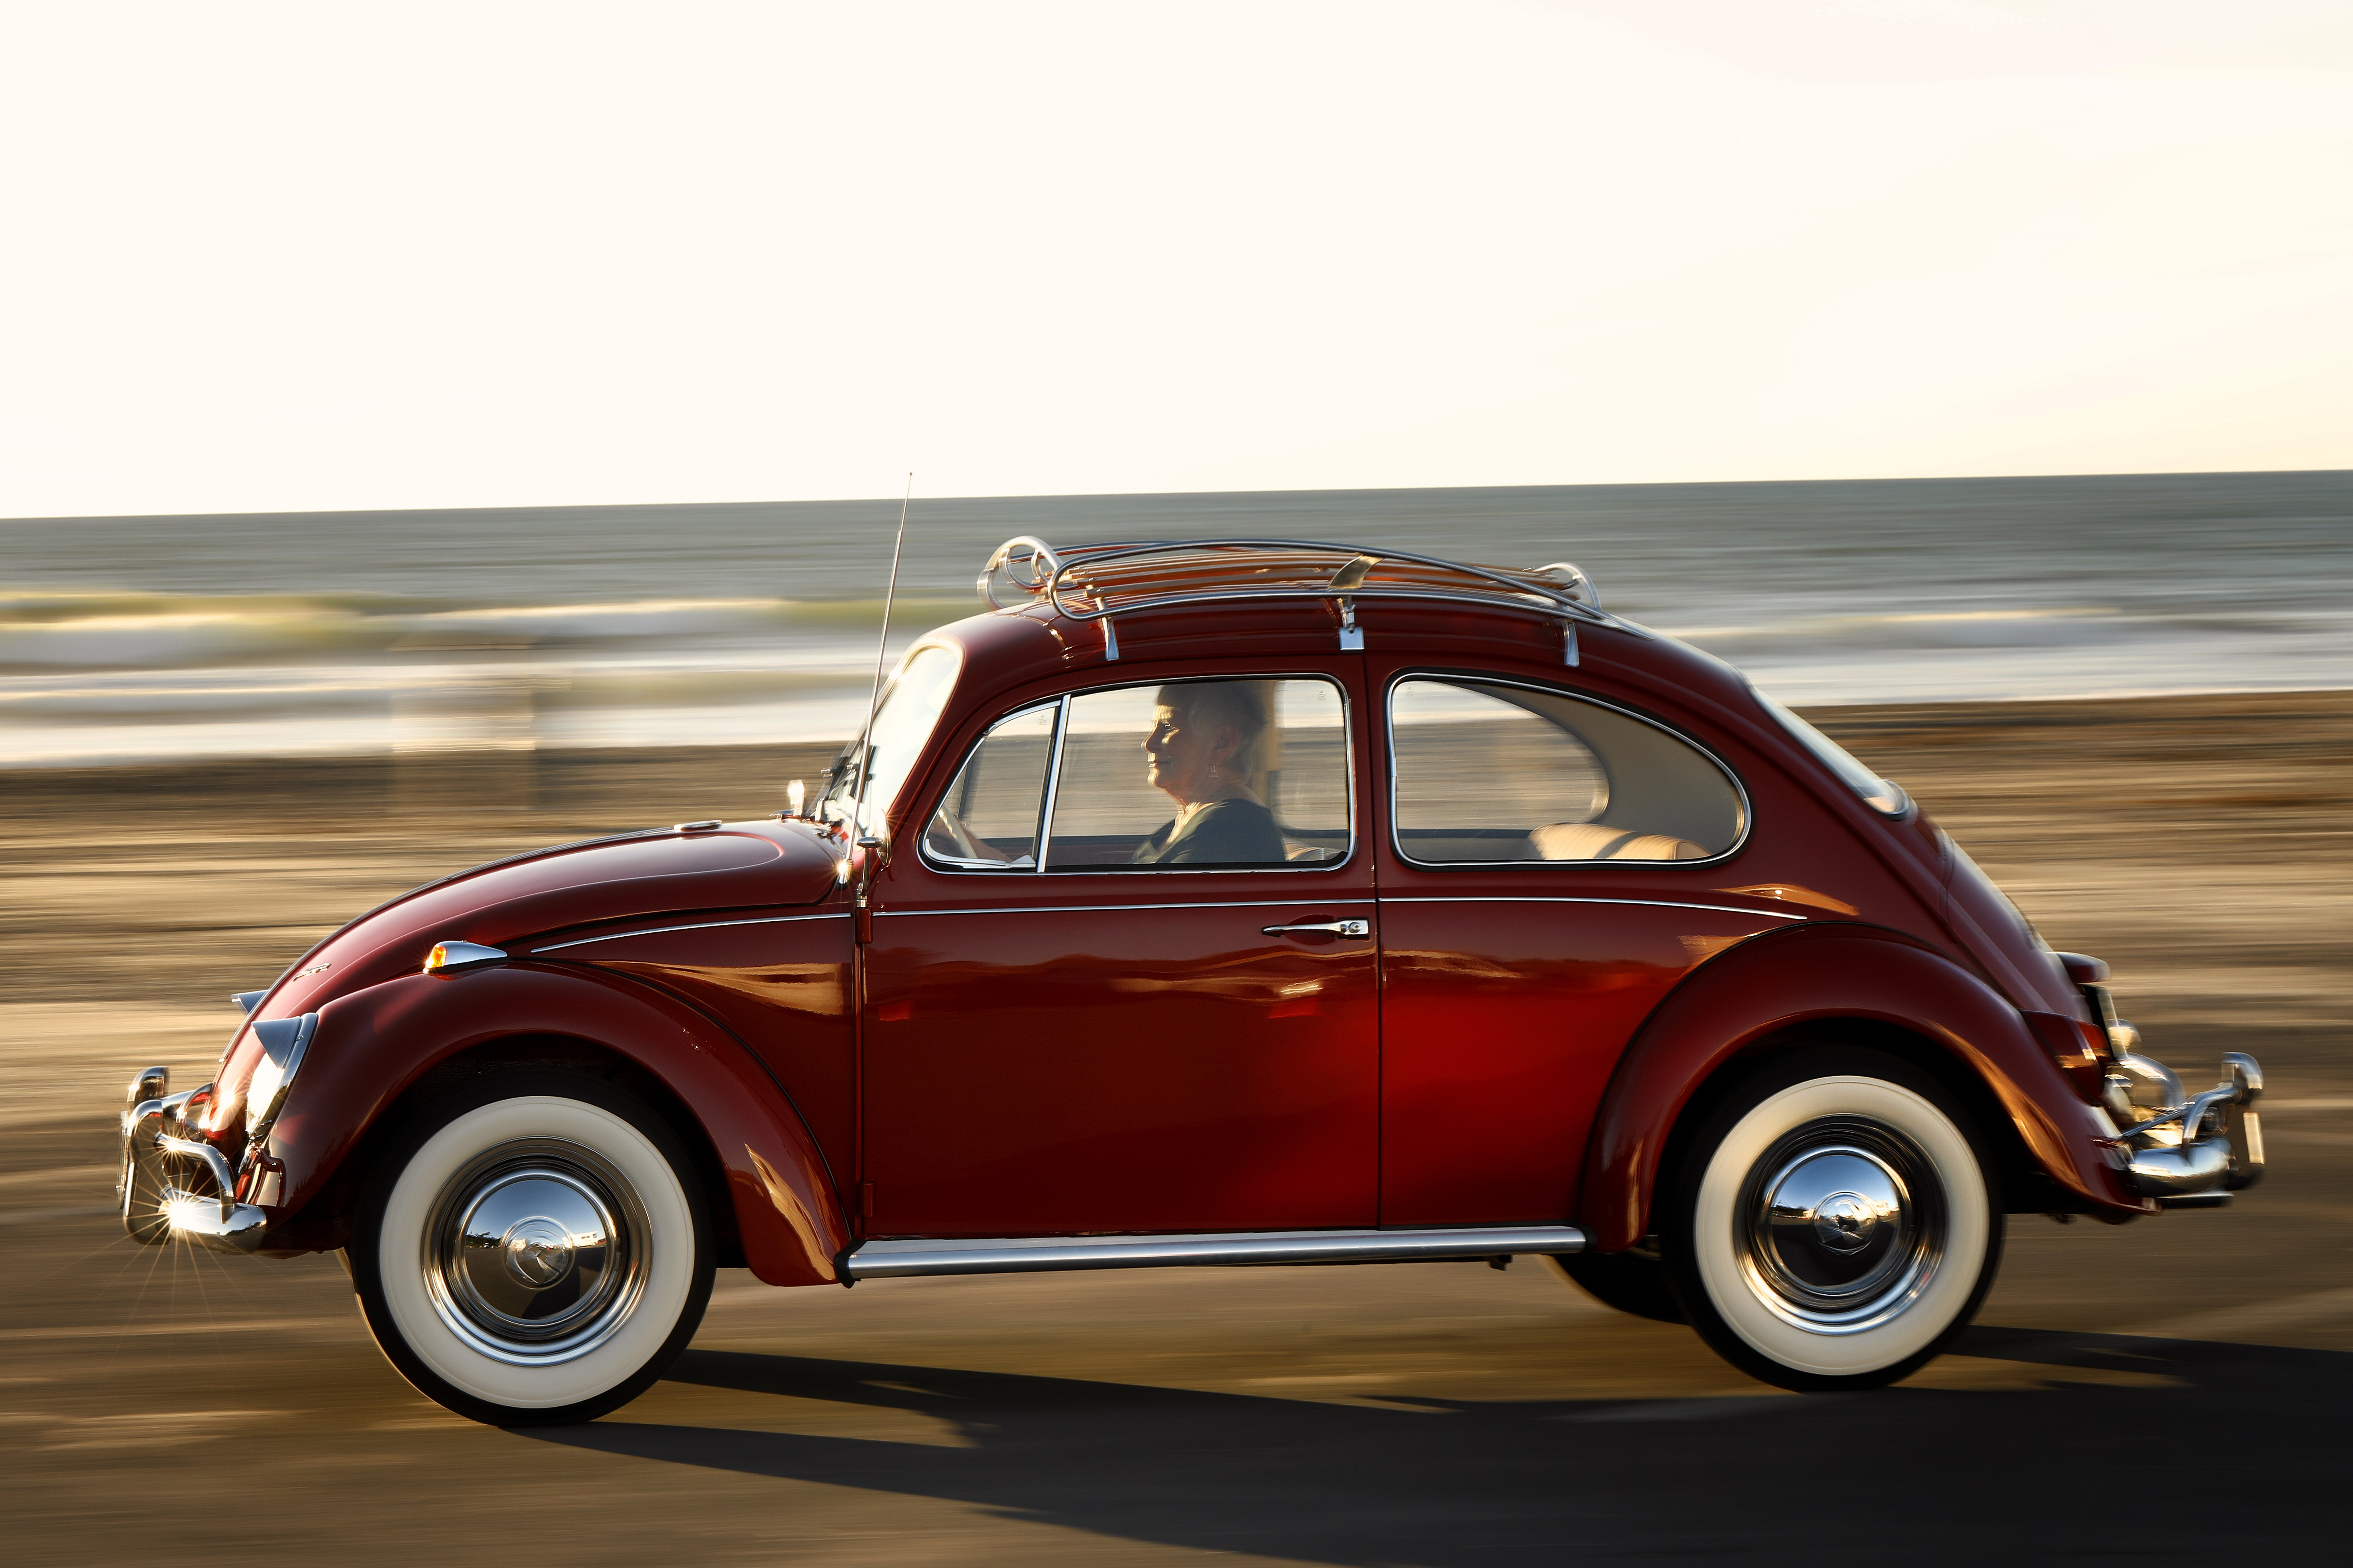 3bb3d49e3b503 A HOLIDAY HOMECOMING  VOLKSWAGEN BEETLE OWNER OF 51 YEARS REUNITED WITH   ANNIE  AFTER ONCE-IN-A-LIFETIME FACTORY RESTORATION - Volkswagen Media Site